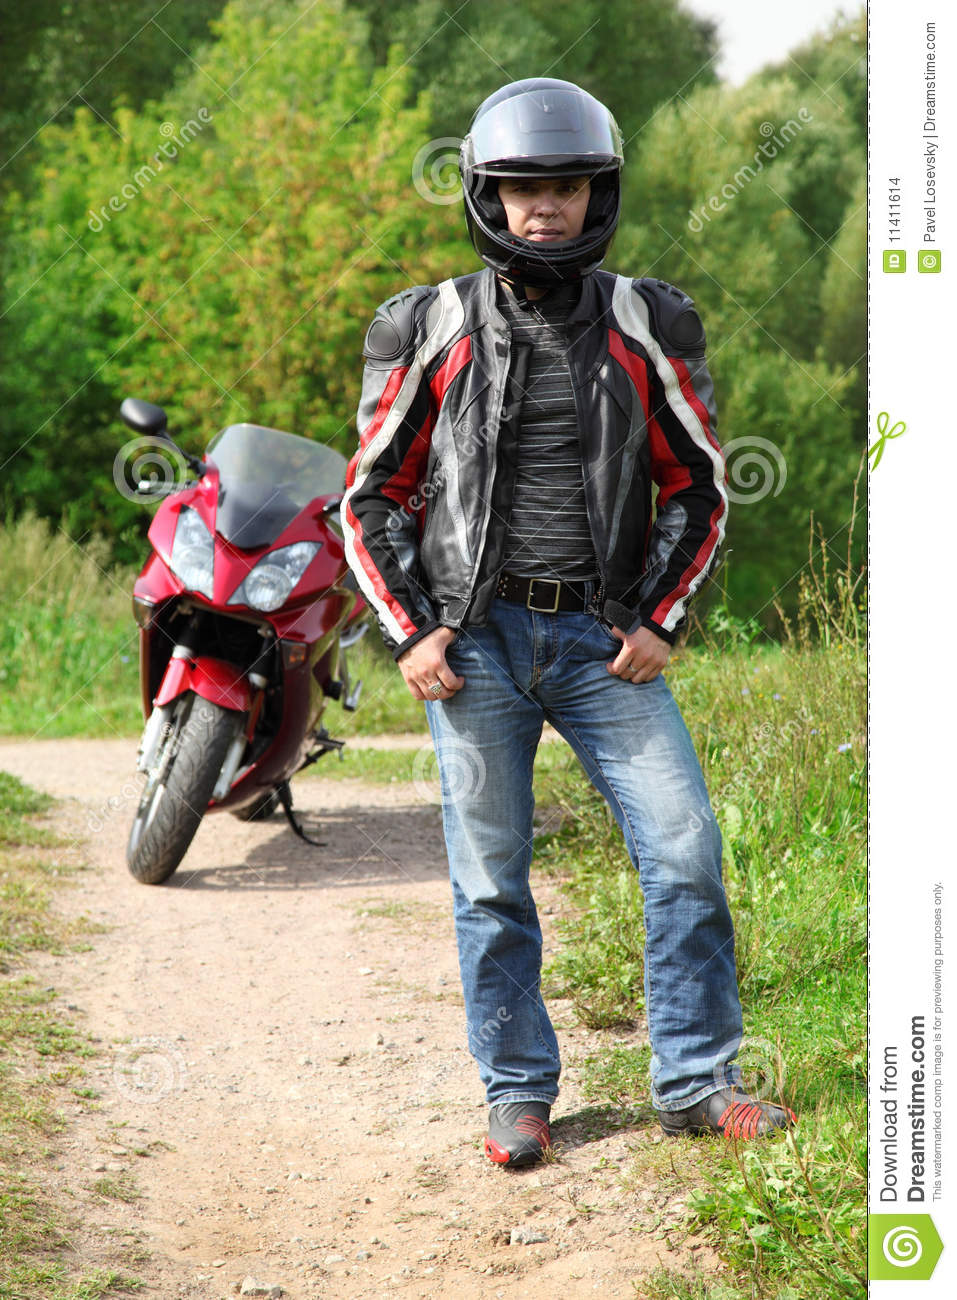 Motorcyclist standing on country road near bike